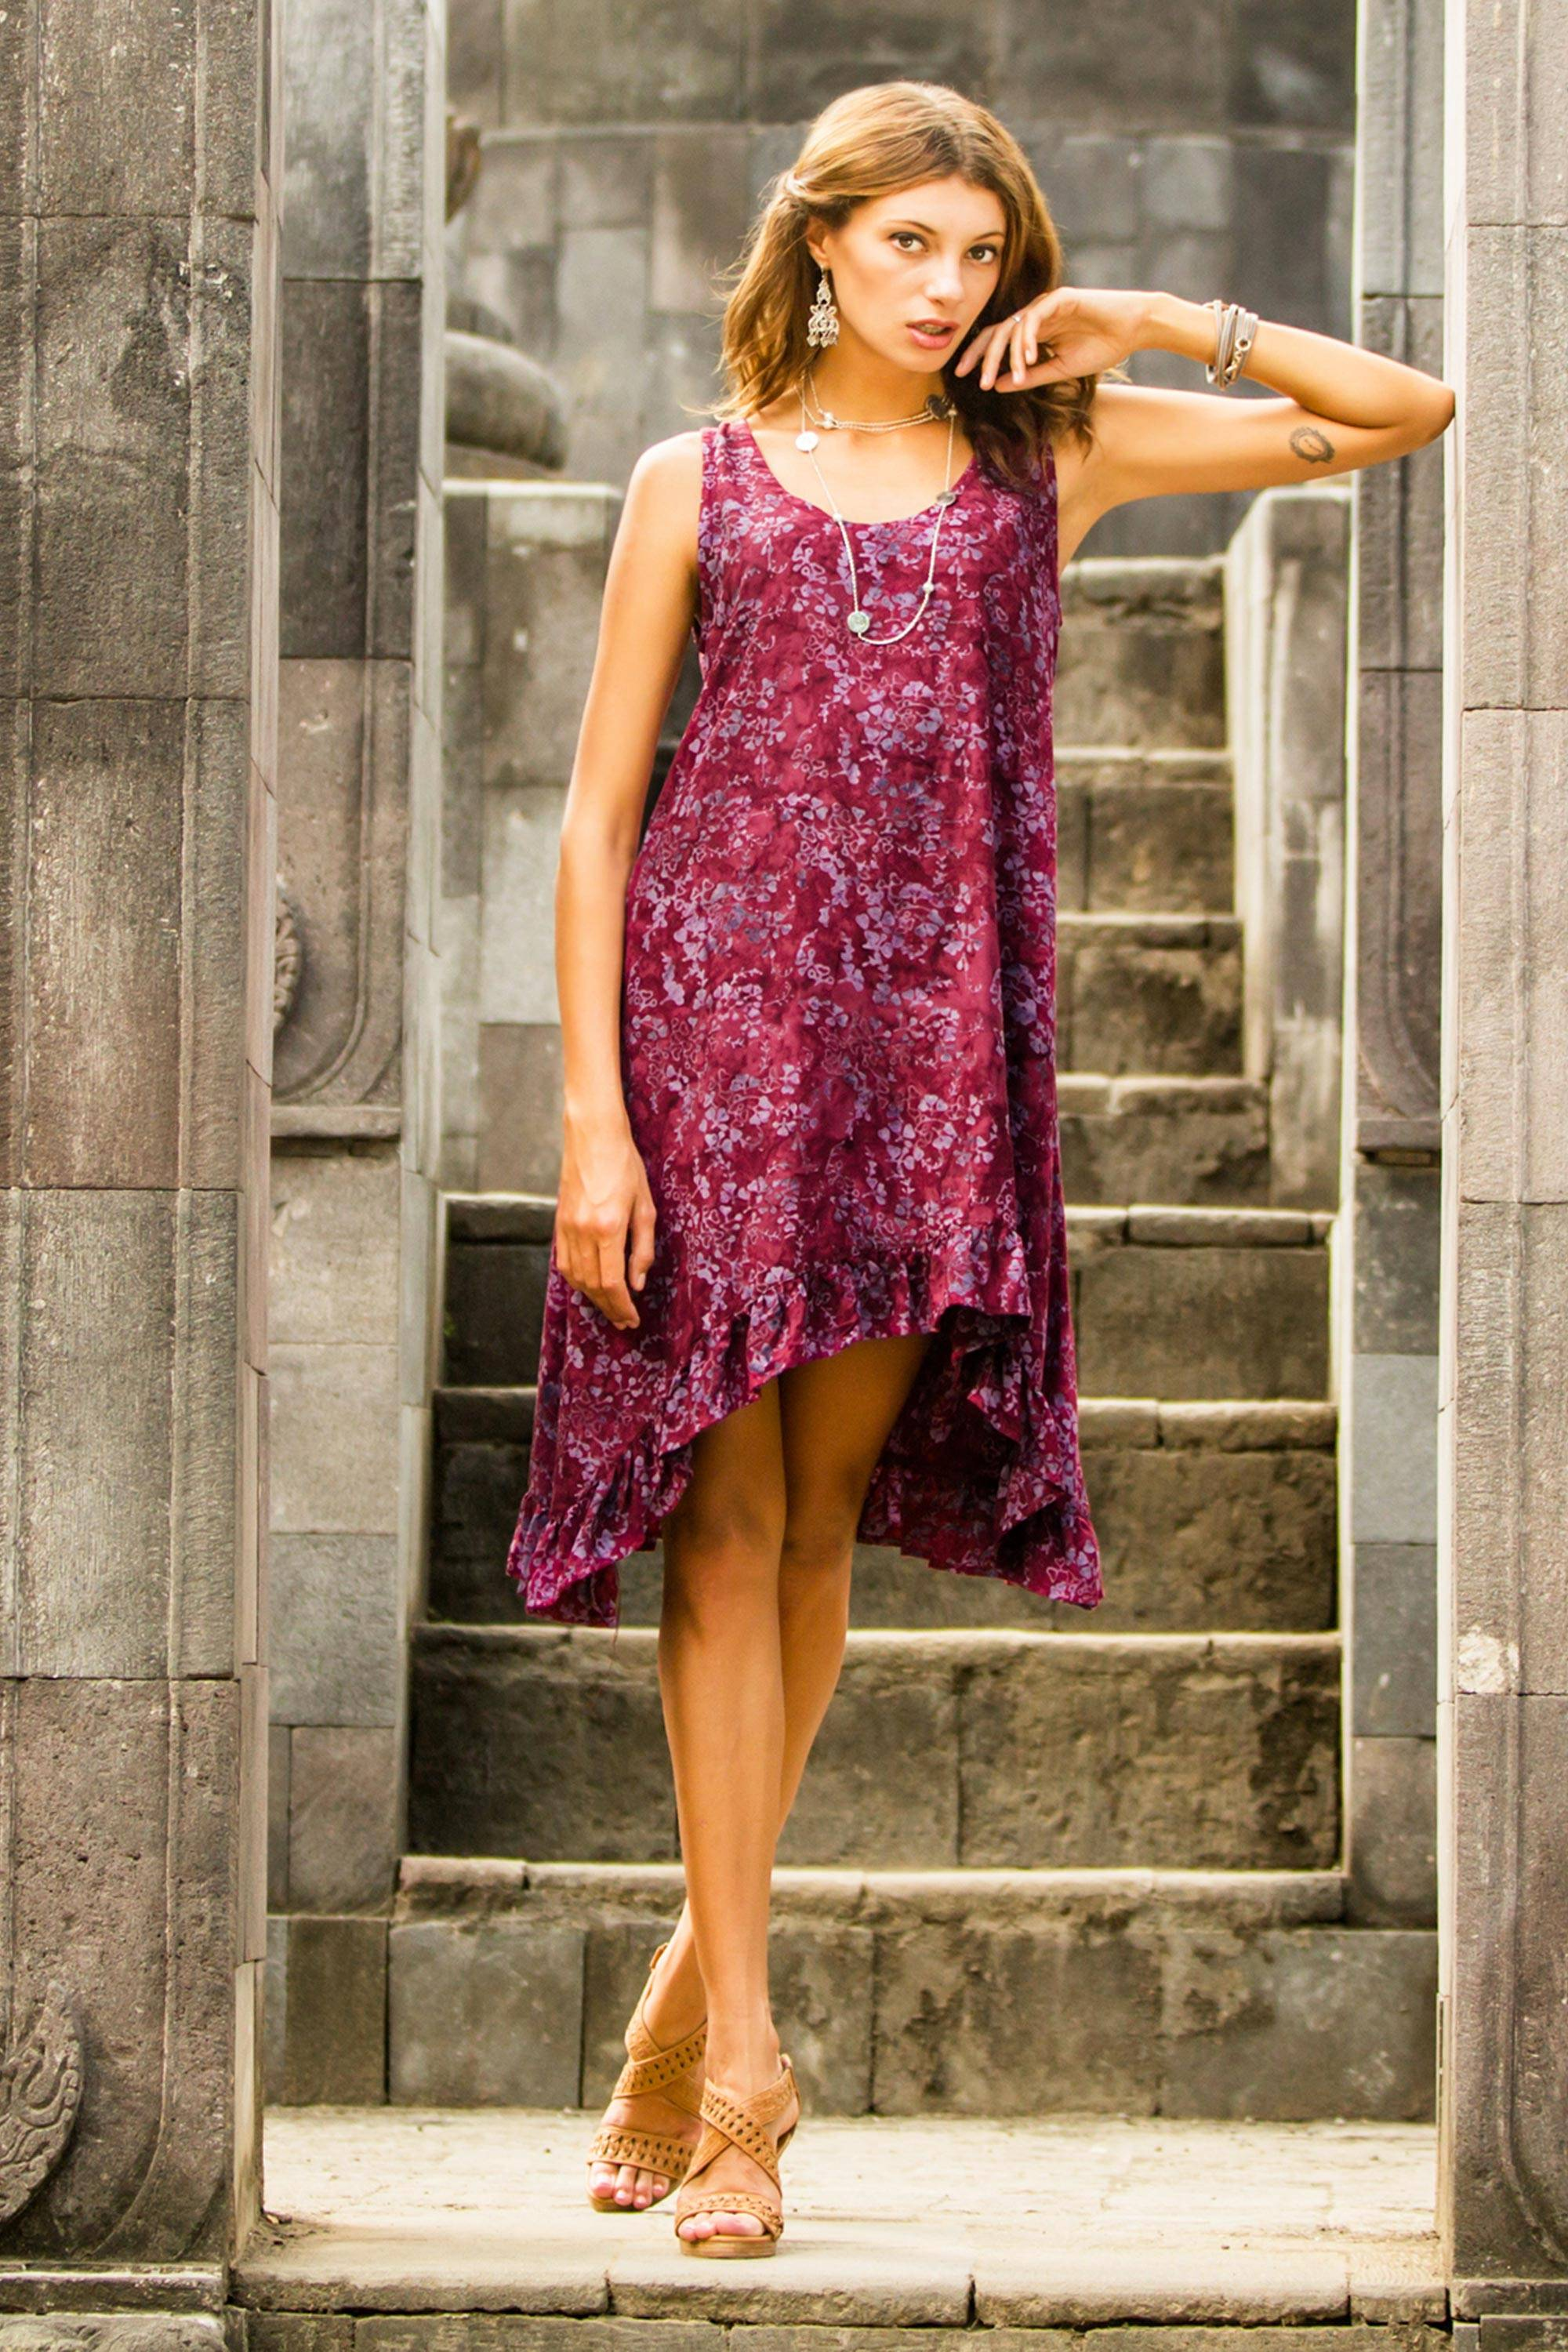 Essential Summer Dress Styles Global Style From Novica Tendencies Short Shirts Basic Long Collar Less Wine Burgundy S Batik Printed Maroon And Pink Flowers On Rayon Sundress Floral